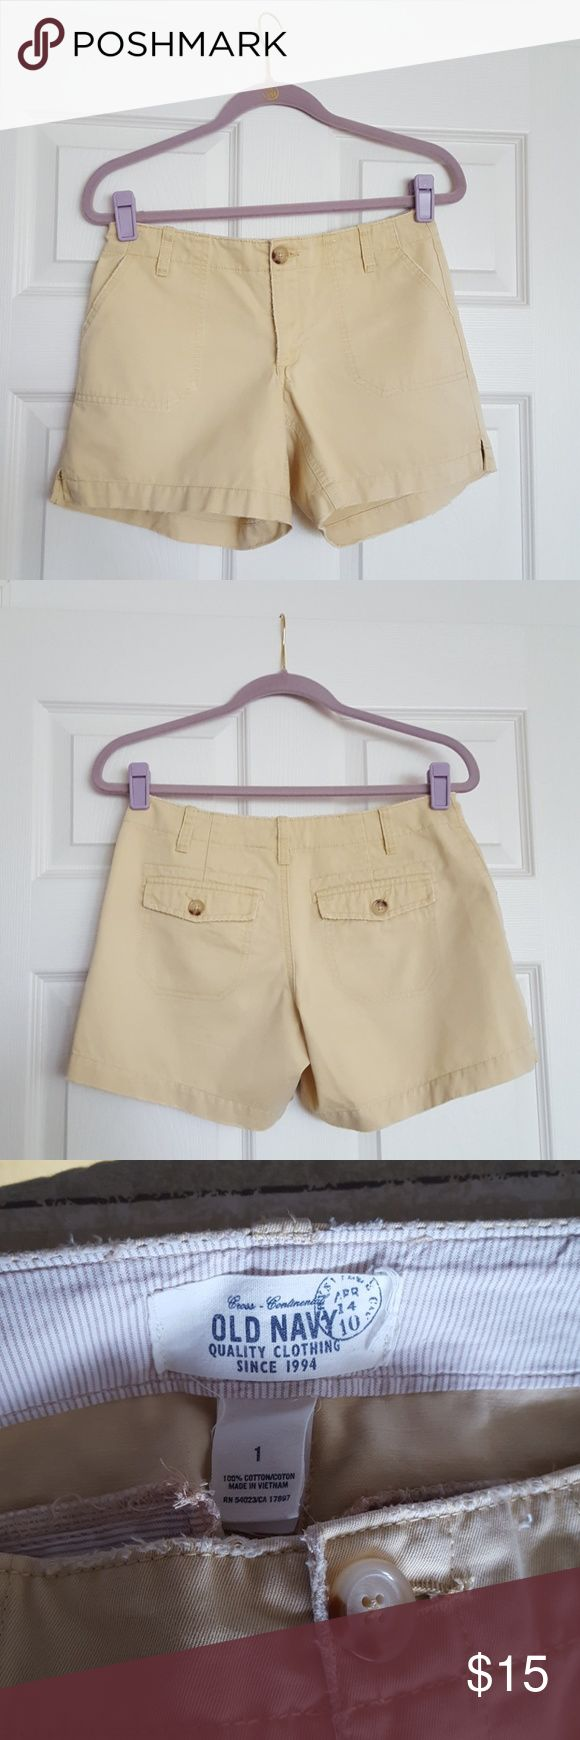 ⭐PRICE DROP ⭐Woman's shorts Old Navy shorts.   Gently worn.  Smoke free home Old Navy Shorts